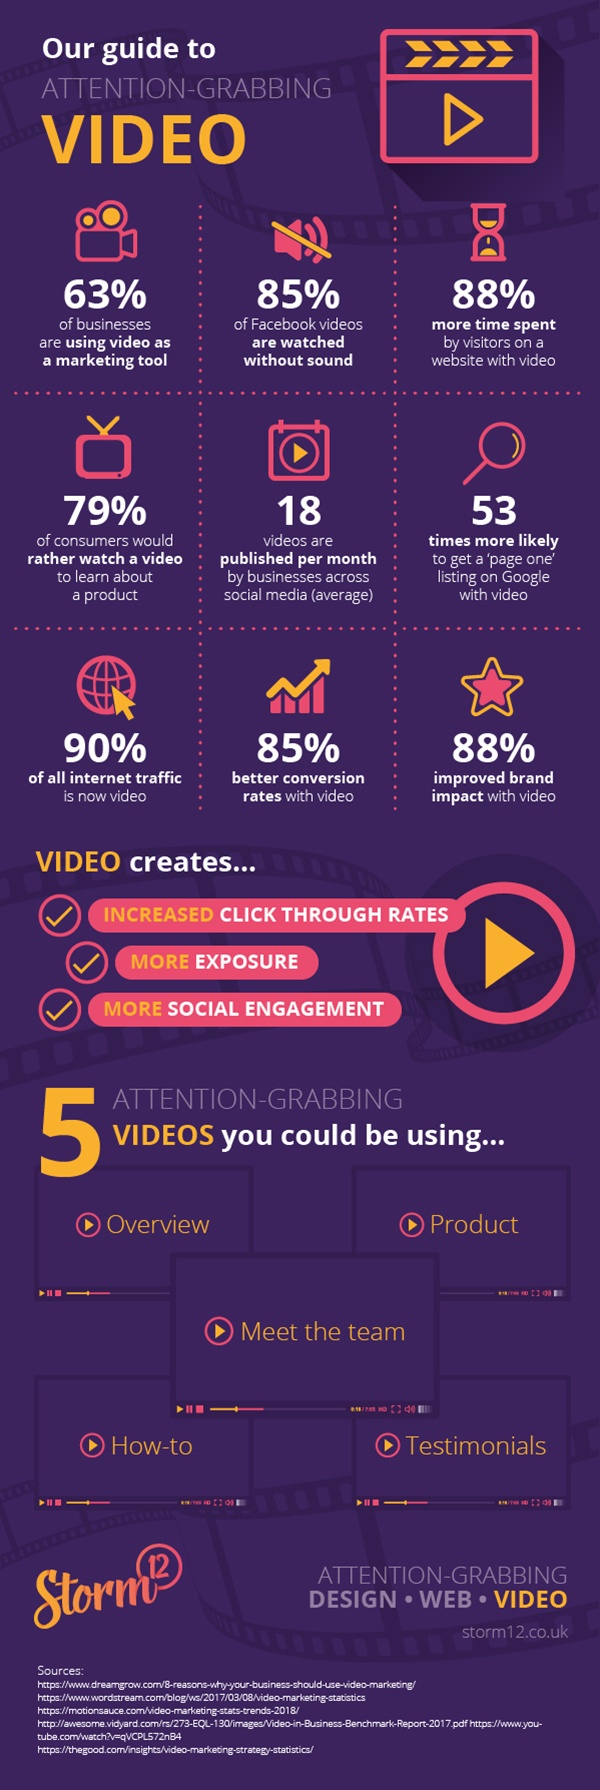 videostats2018infographic_1790